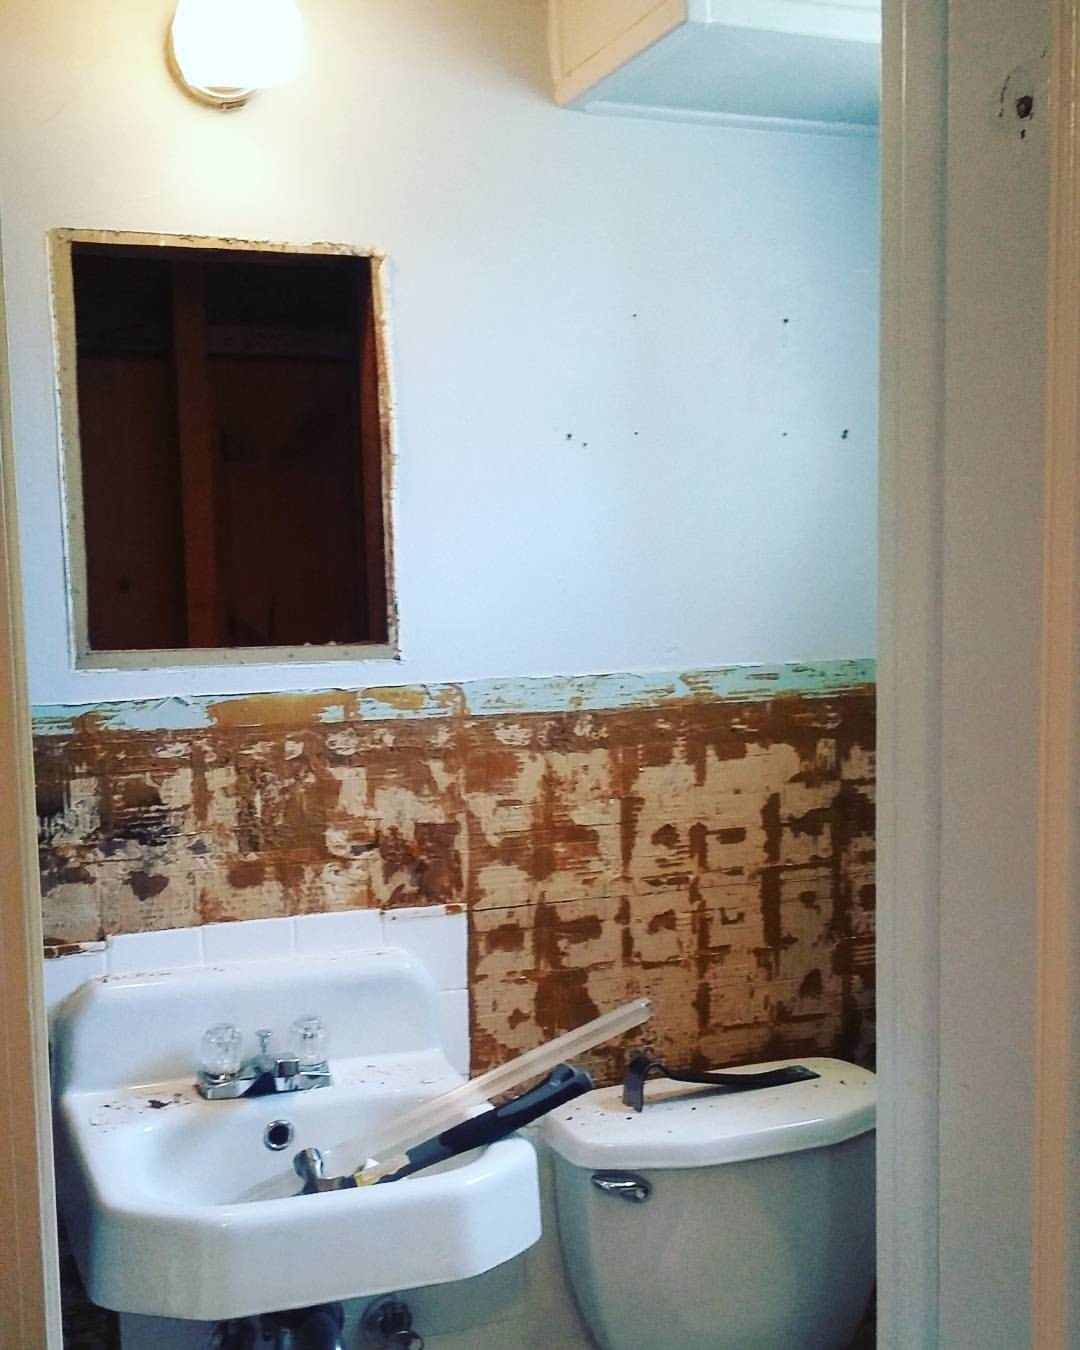 Our Very Small Bathroom Demo